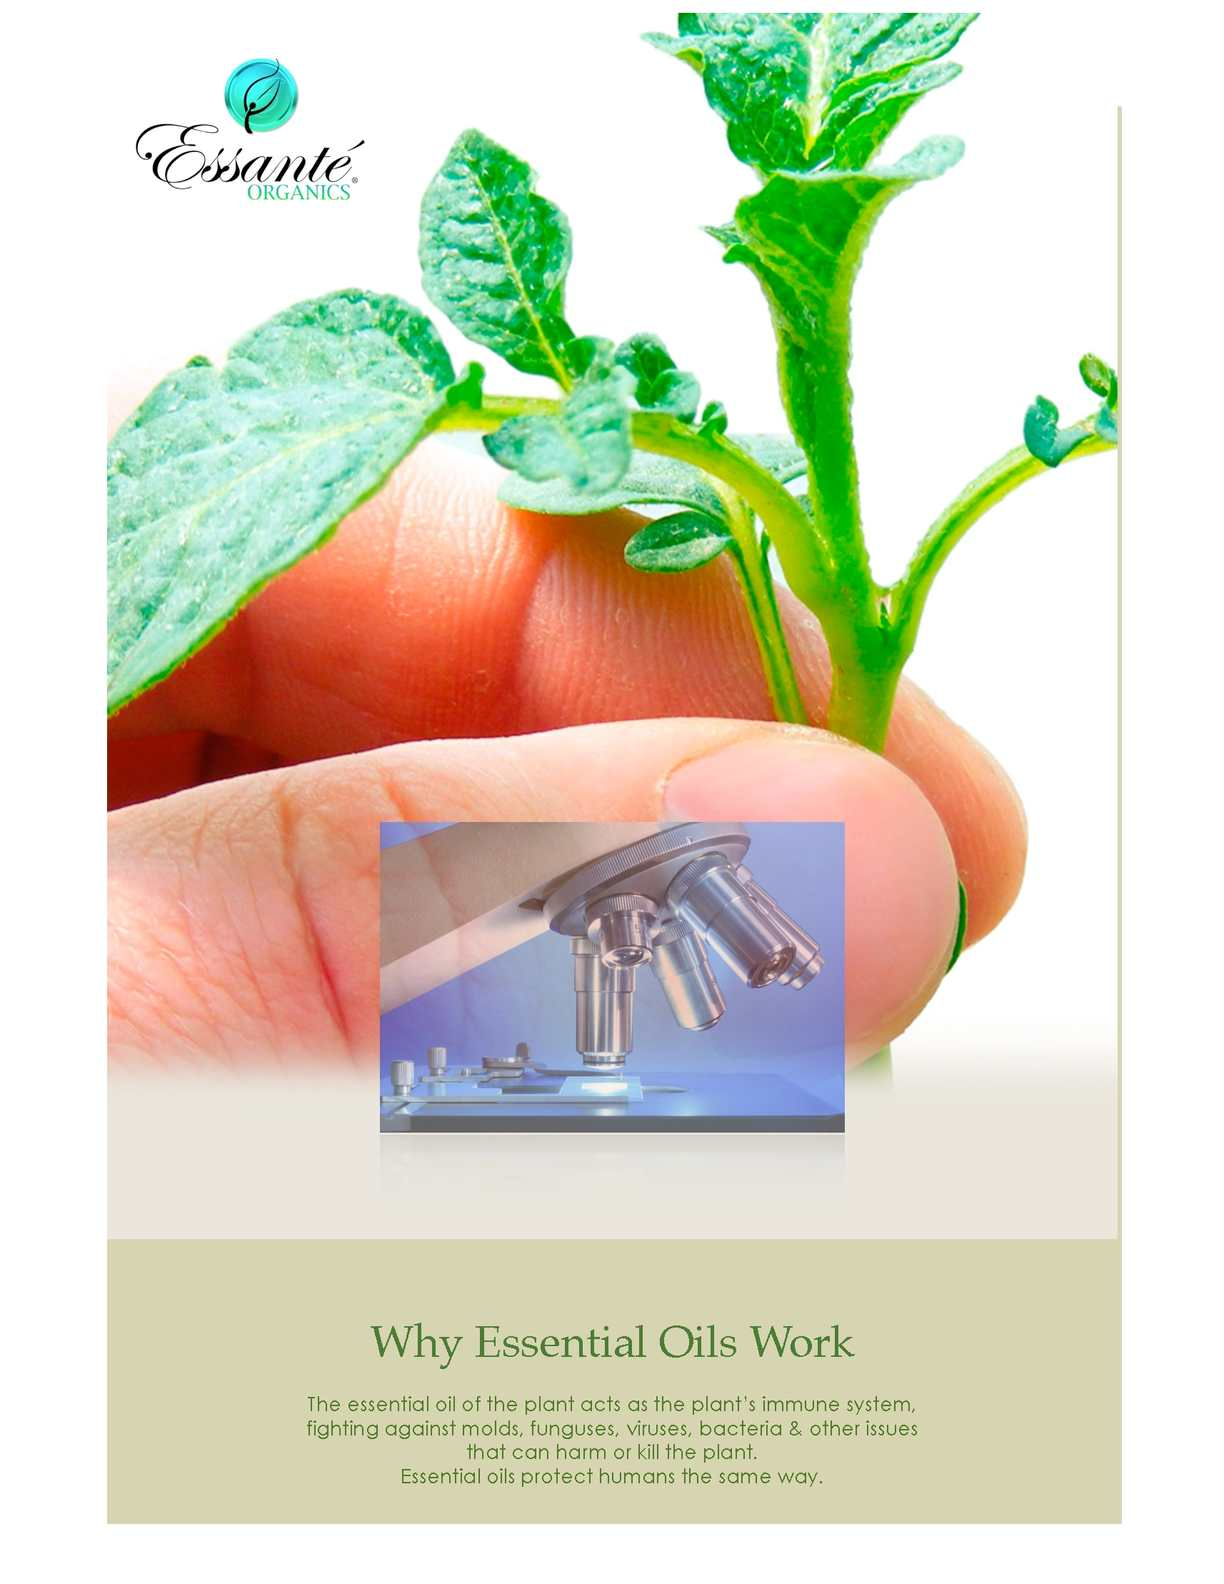 All about Essential Oils an E-Guide by G. Cosentino & Essante Organics